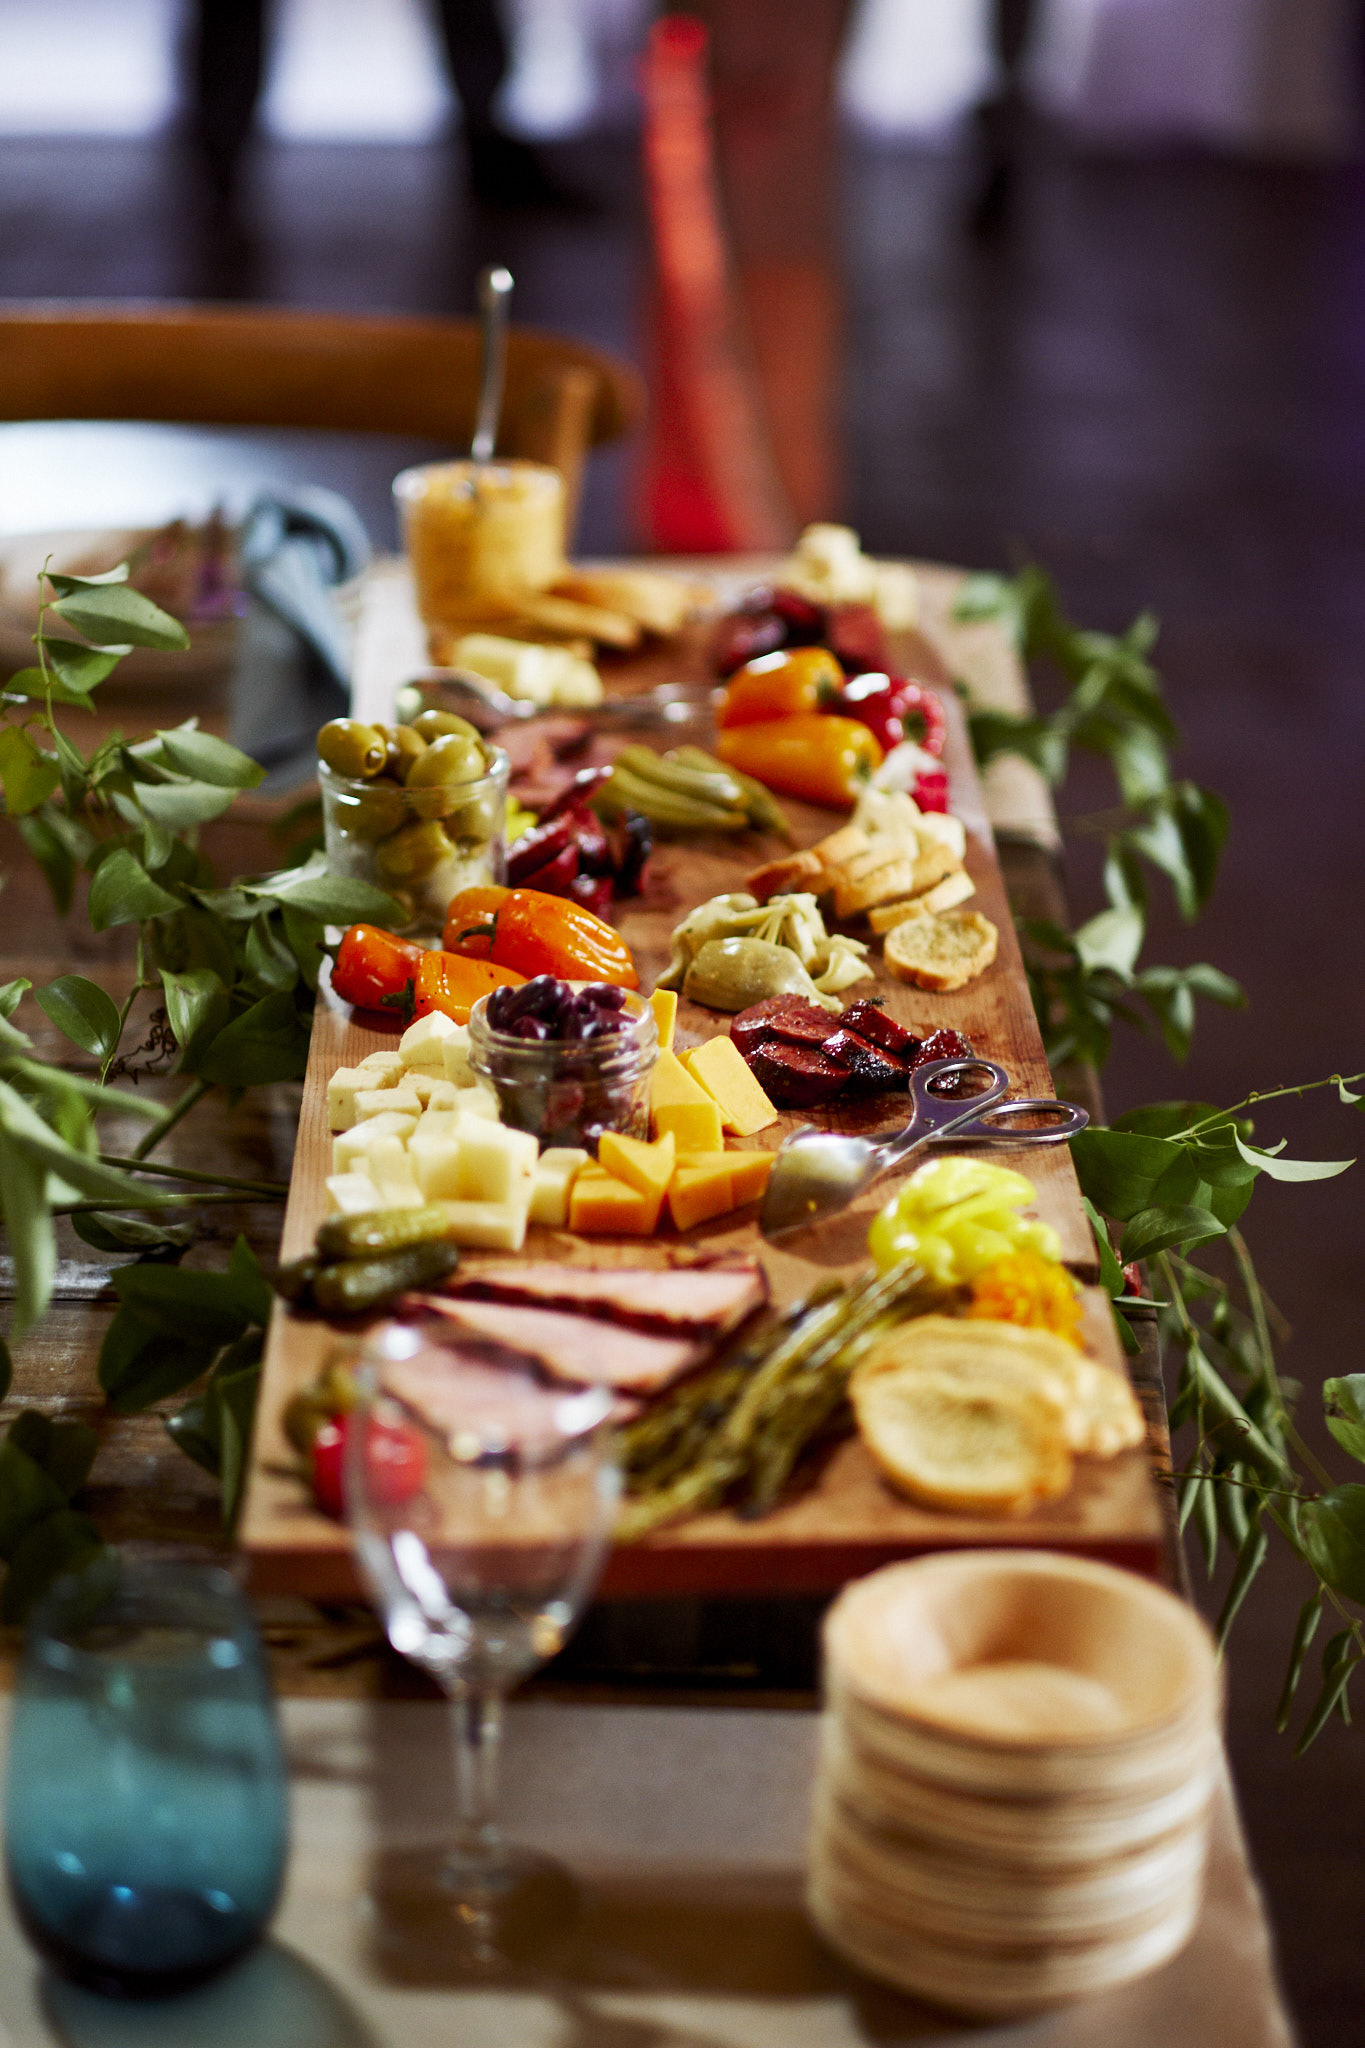 southern antipasto tableside